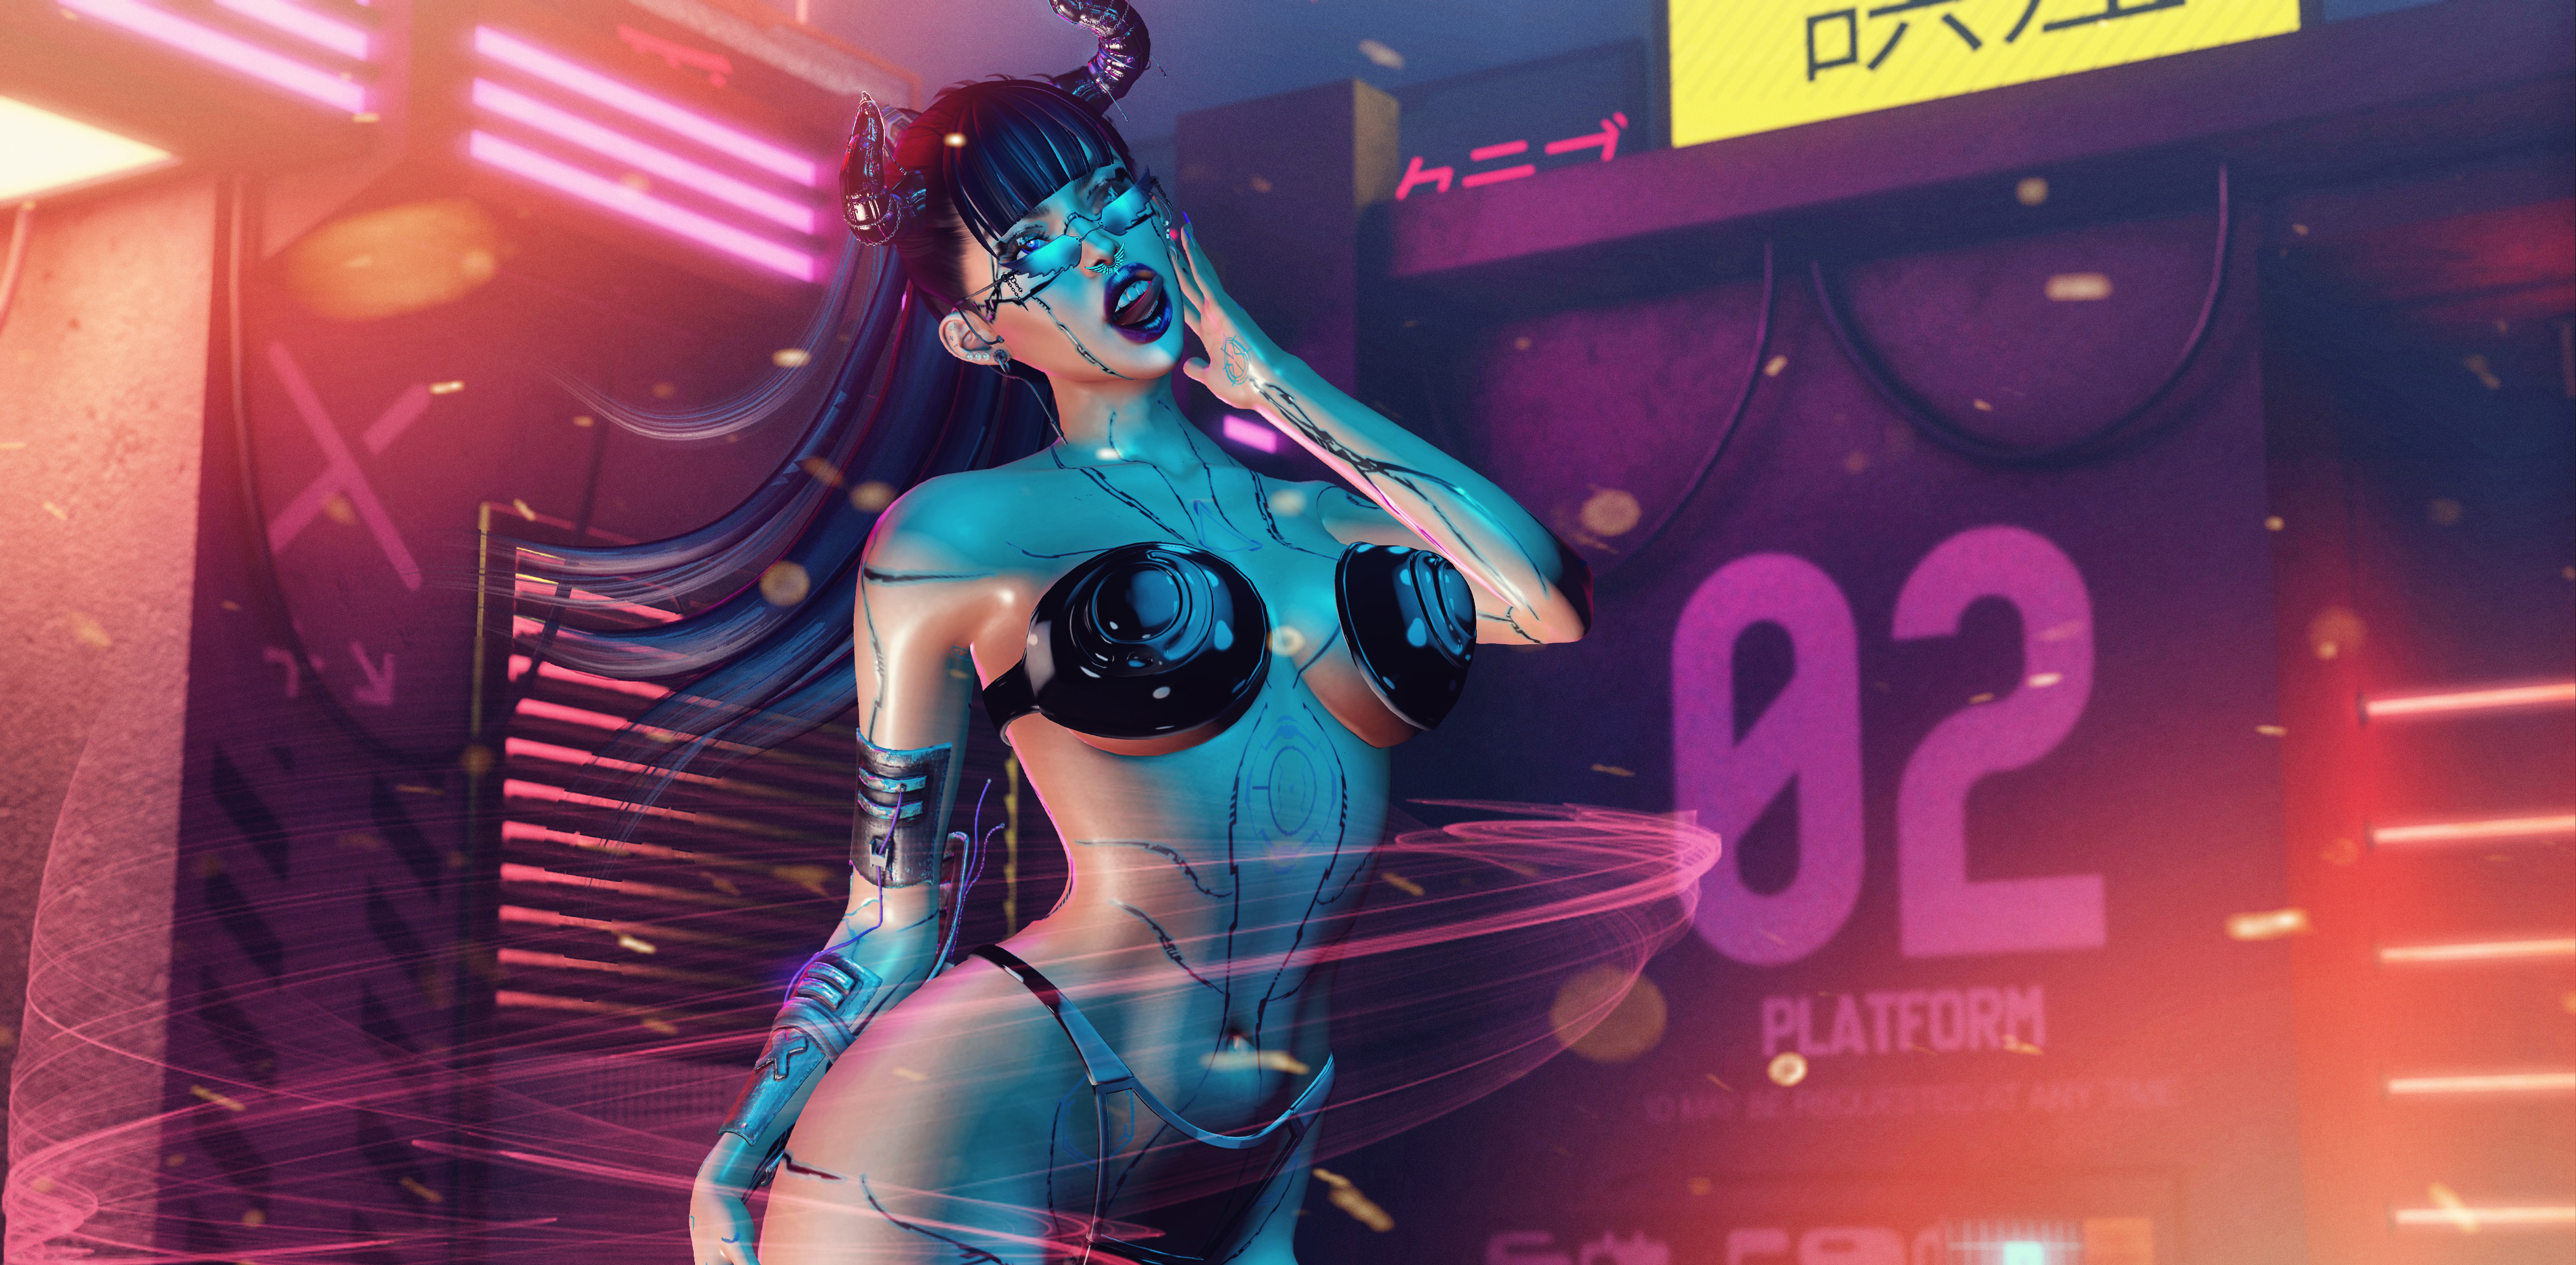 Cyber Babe